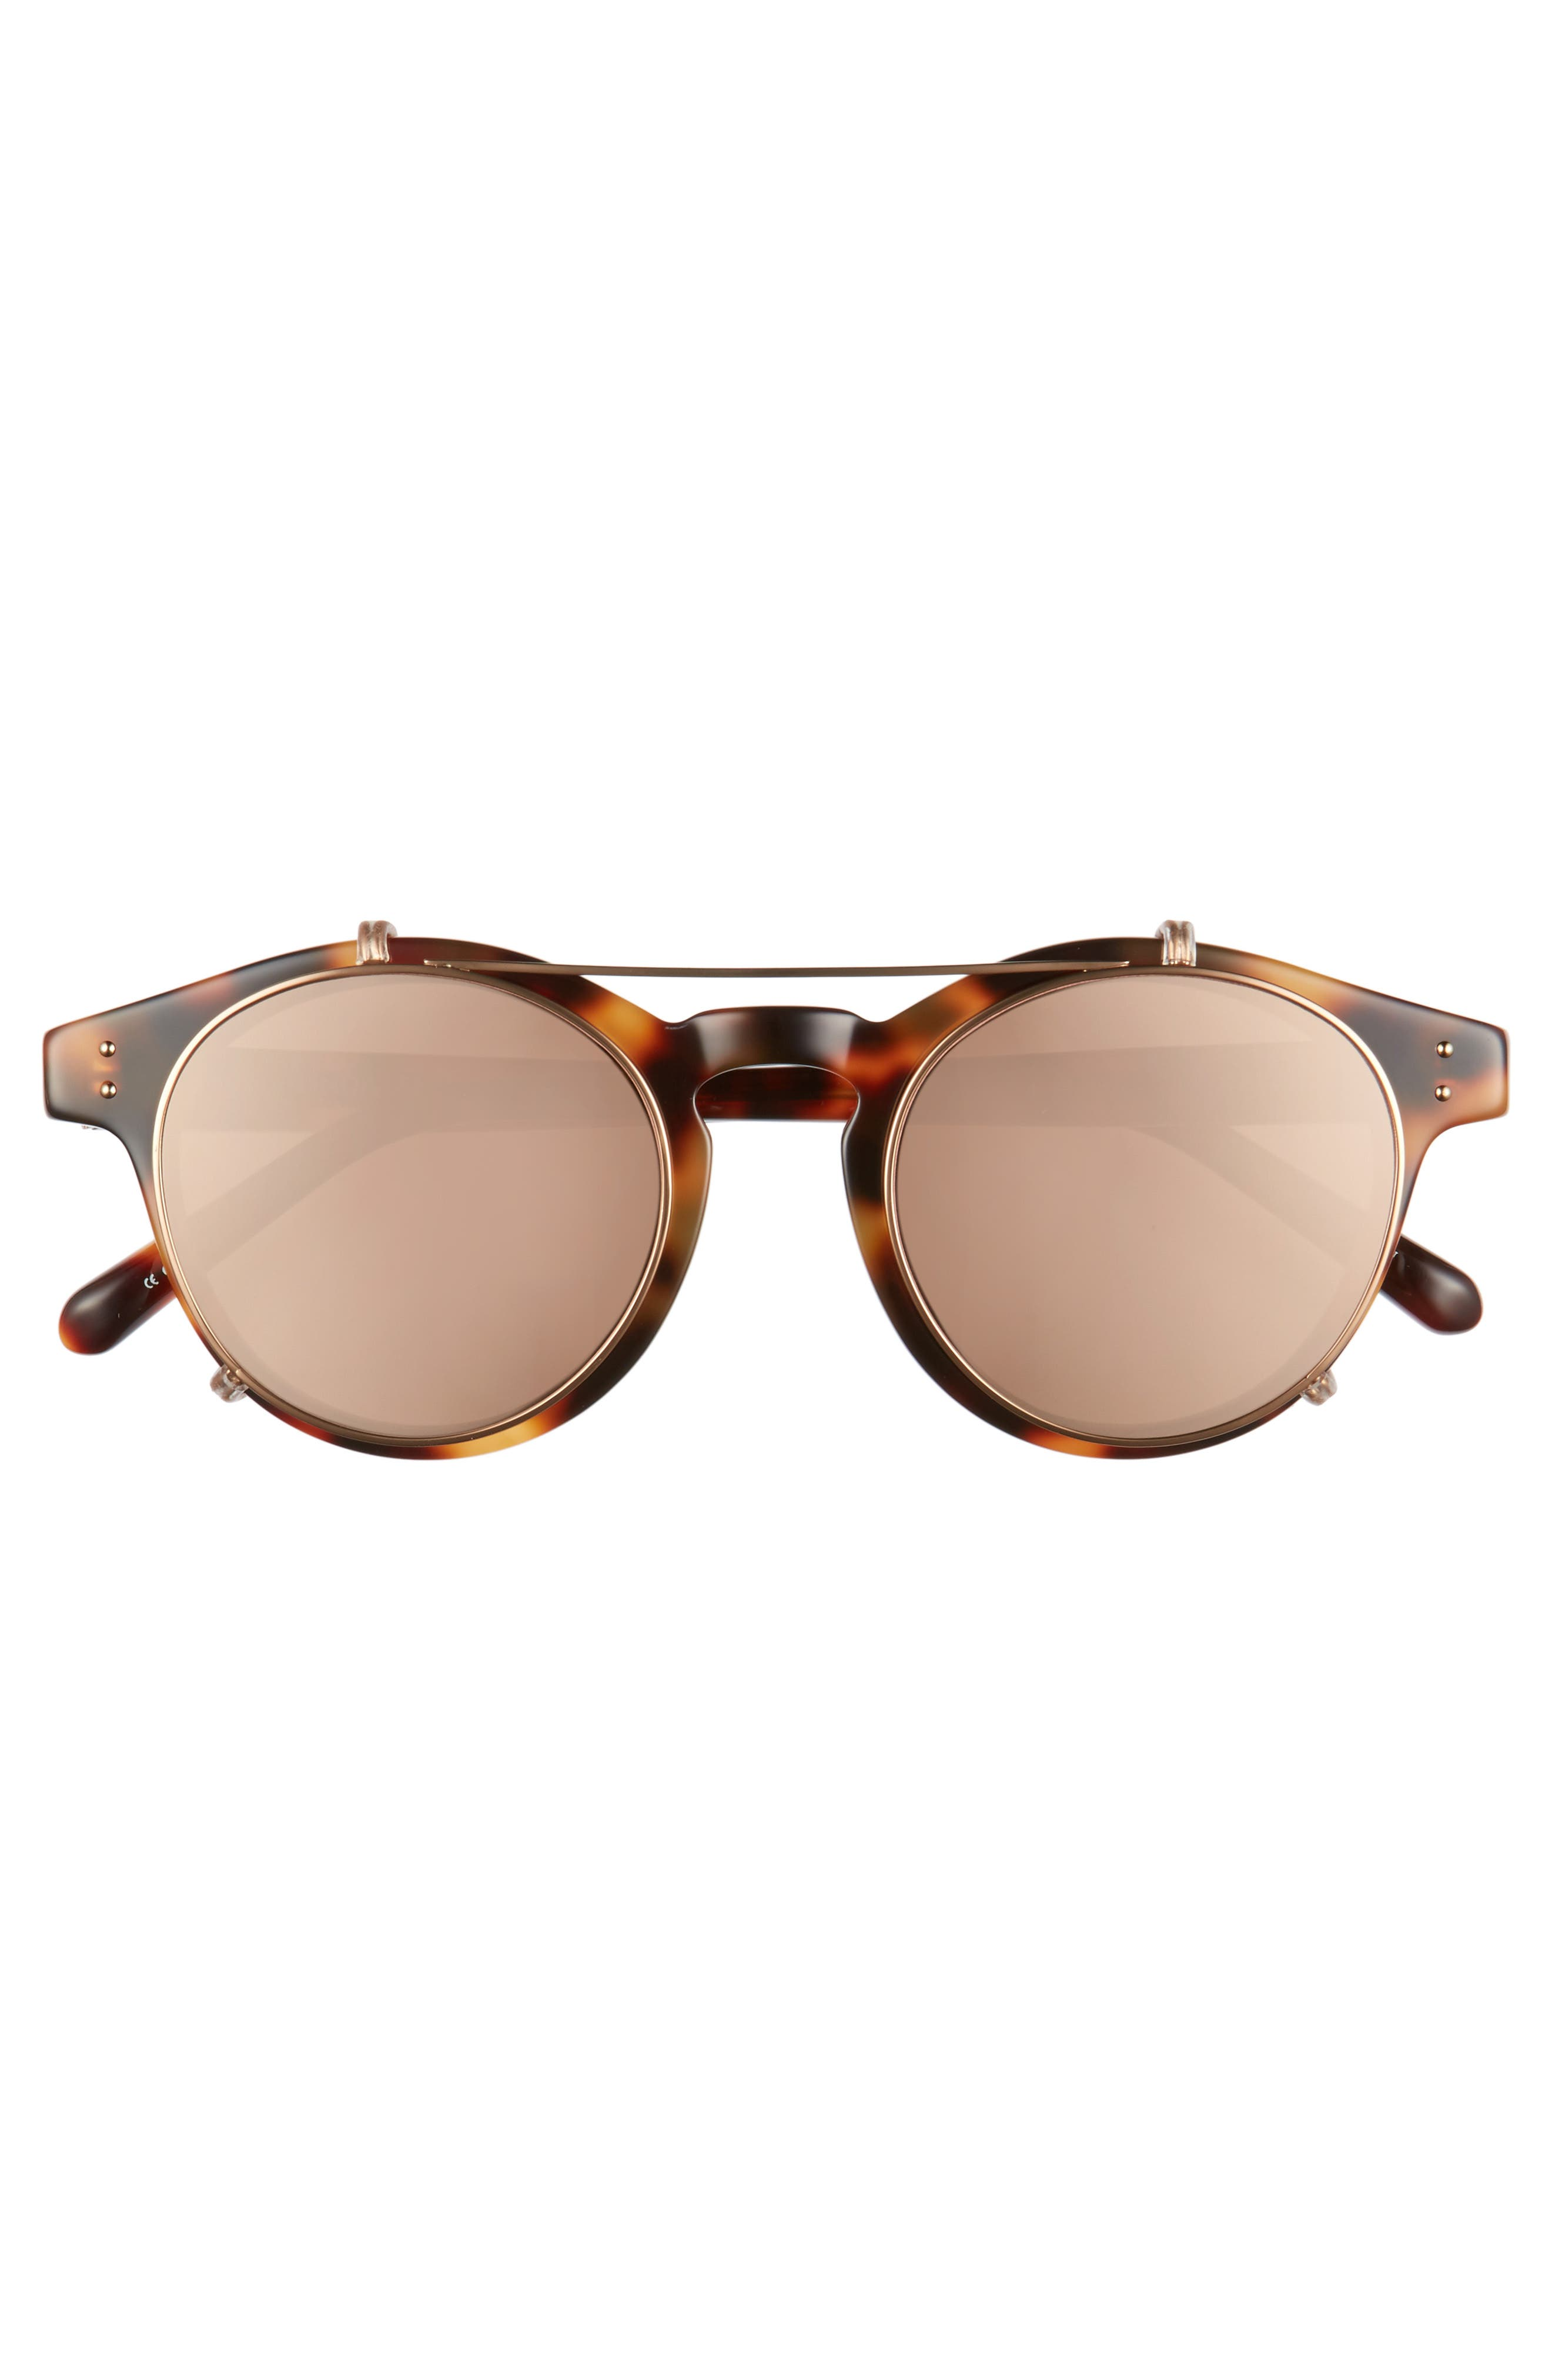 Alternate Image 3  - Linda Farrow 47mm Optical Glasses with Clip-On 18 Karat Rose Gold Trim Sunglasses